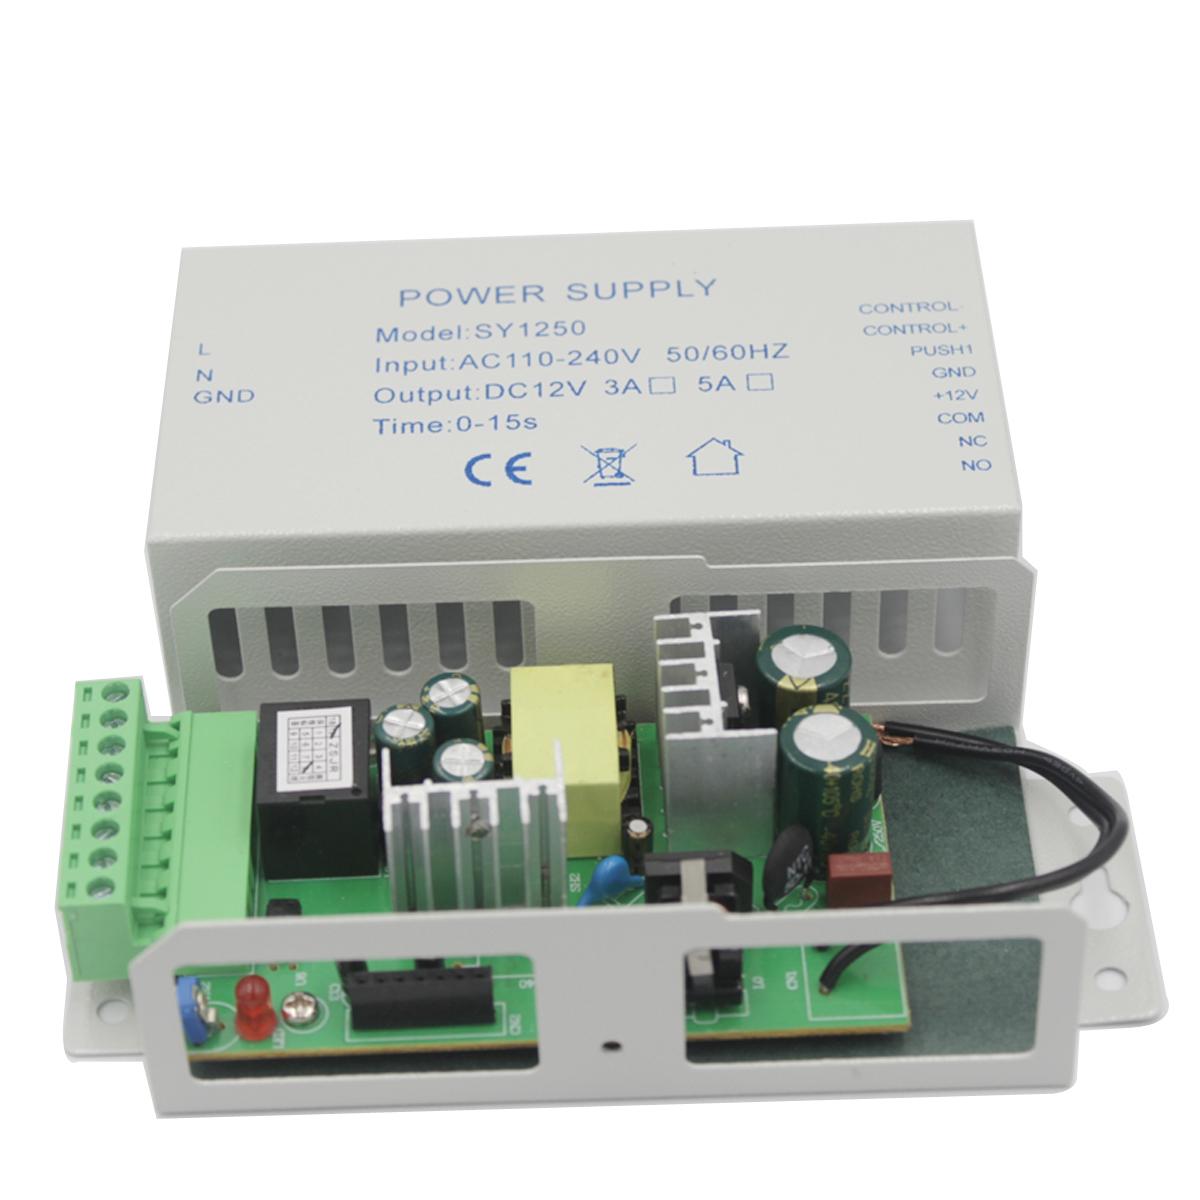 Access Control Power Supply Transformer Door Supplier Adapter Covertor System Machine DC 12V 3A 5A AC 110~240V